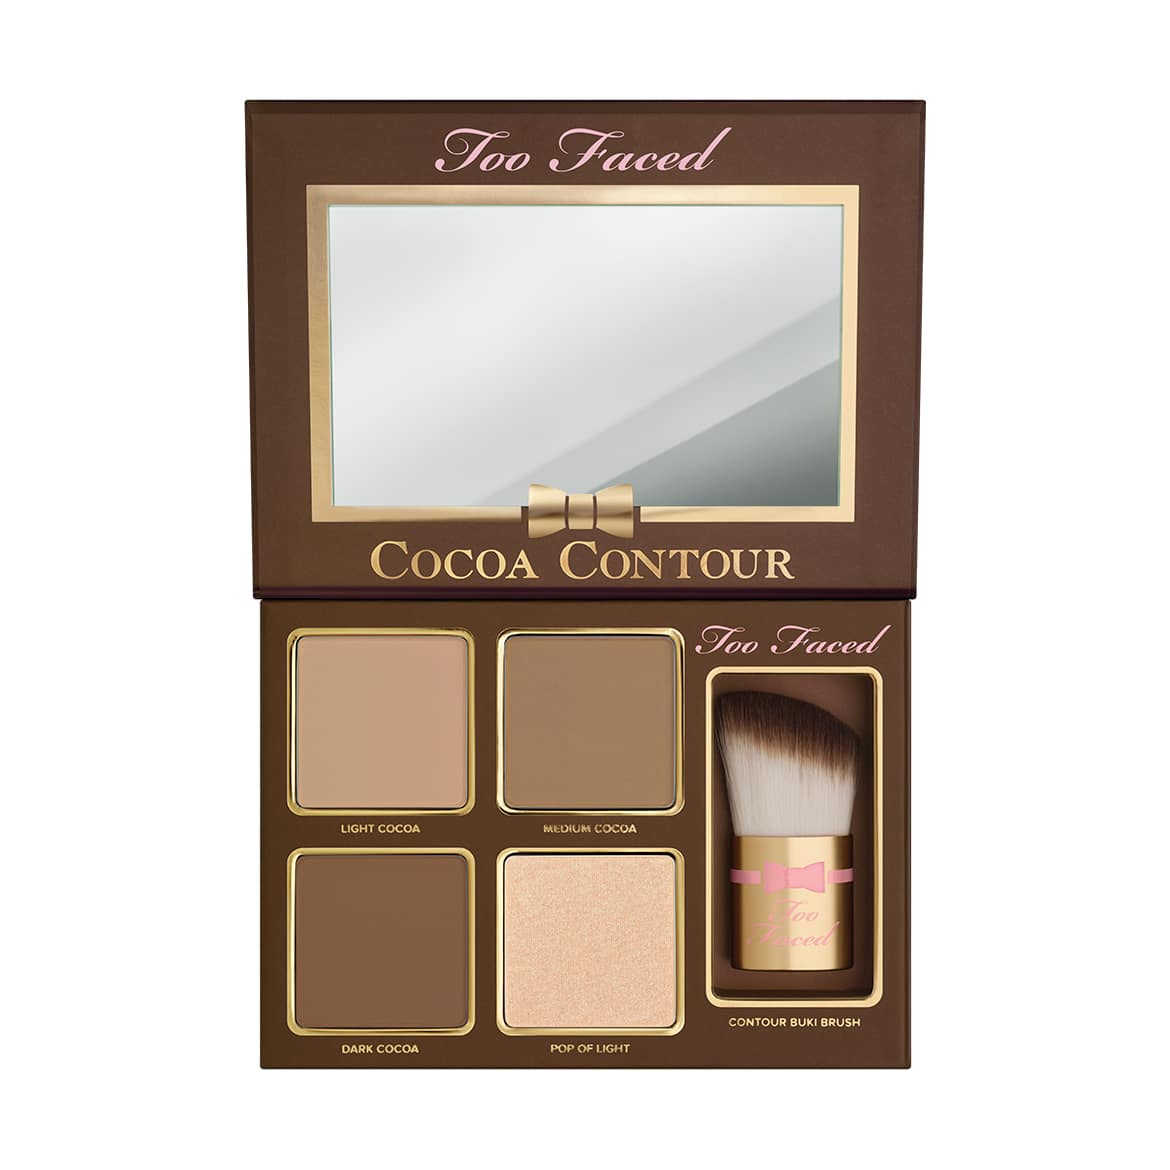 palette cocoa contour too faced ouverte - COCOA CONTOUR, LE KIT CONTOURING GOURMAND DE TOO FACED.